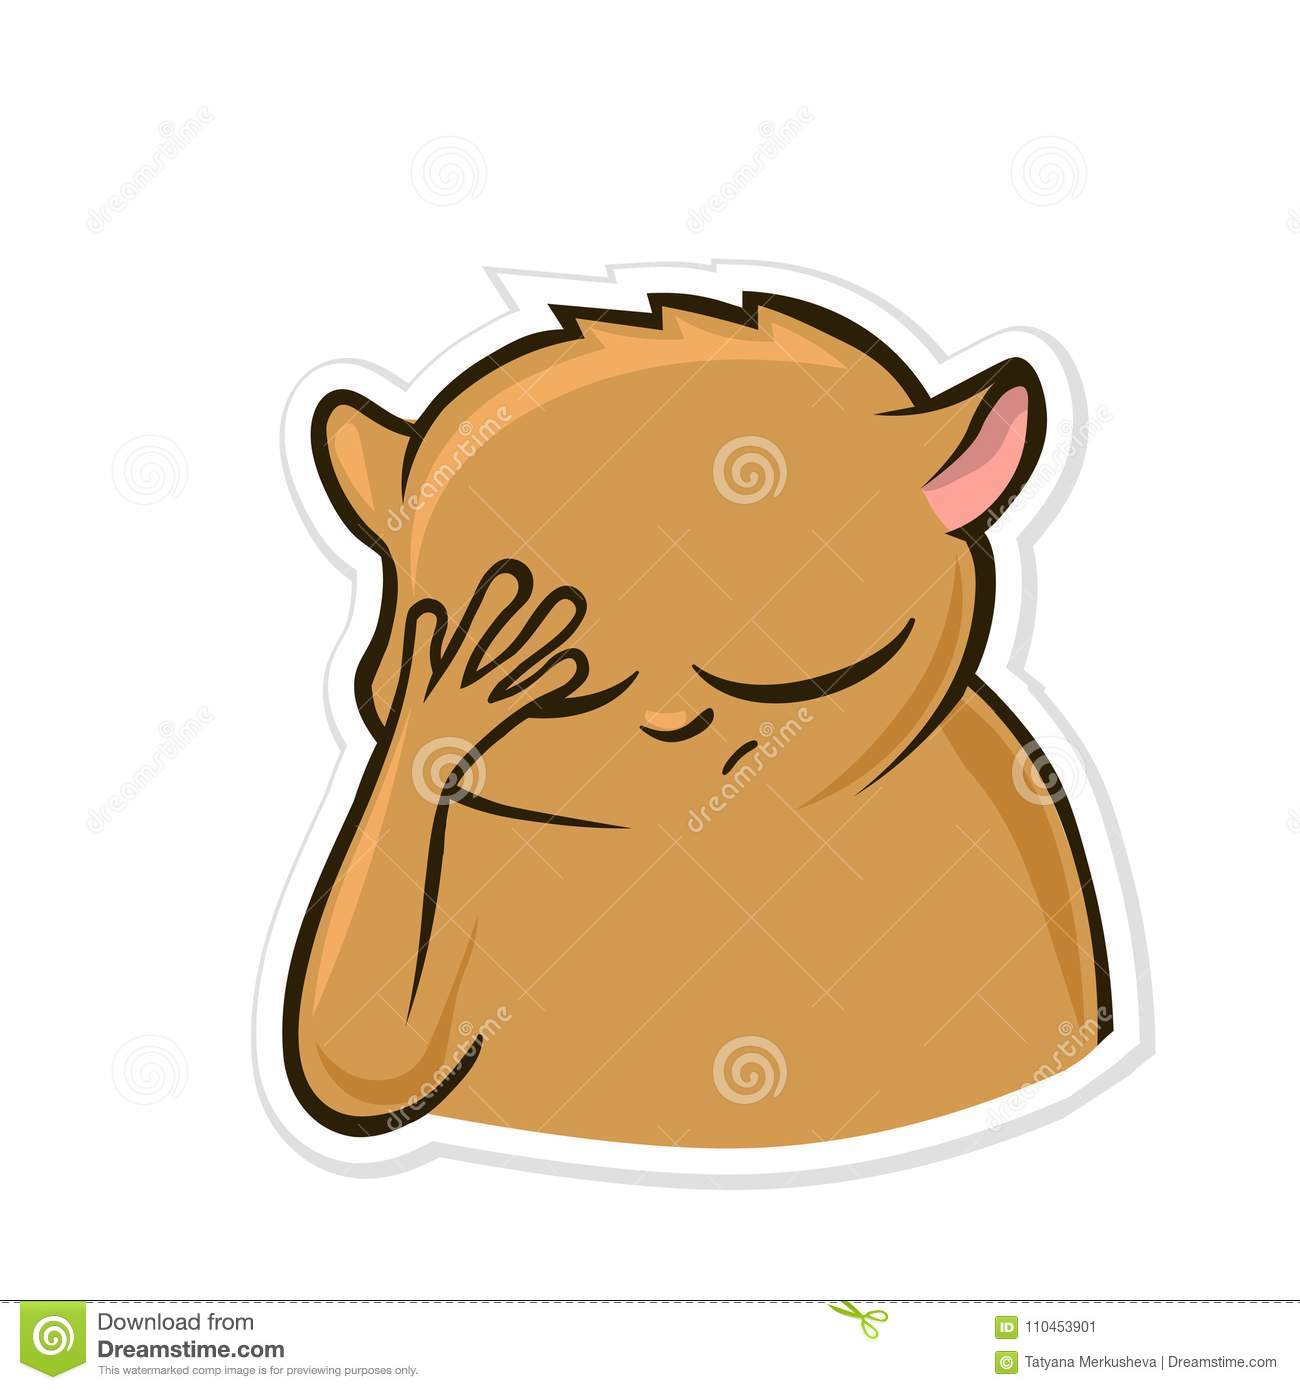 Sticker for messenger with funny animal. Hamster making facepalm gesture, feeling ashamed. Vector illustration, isolated